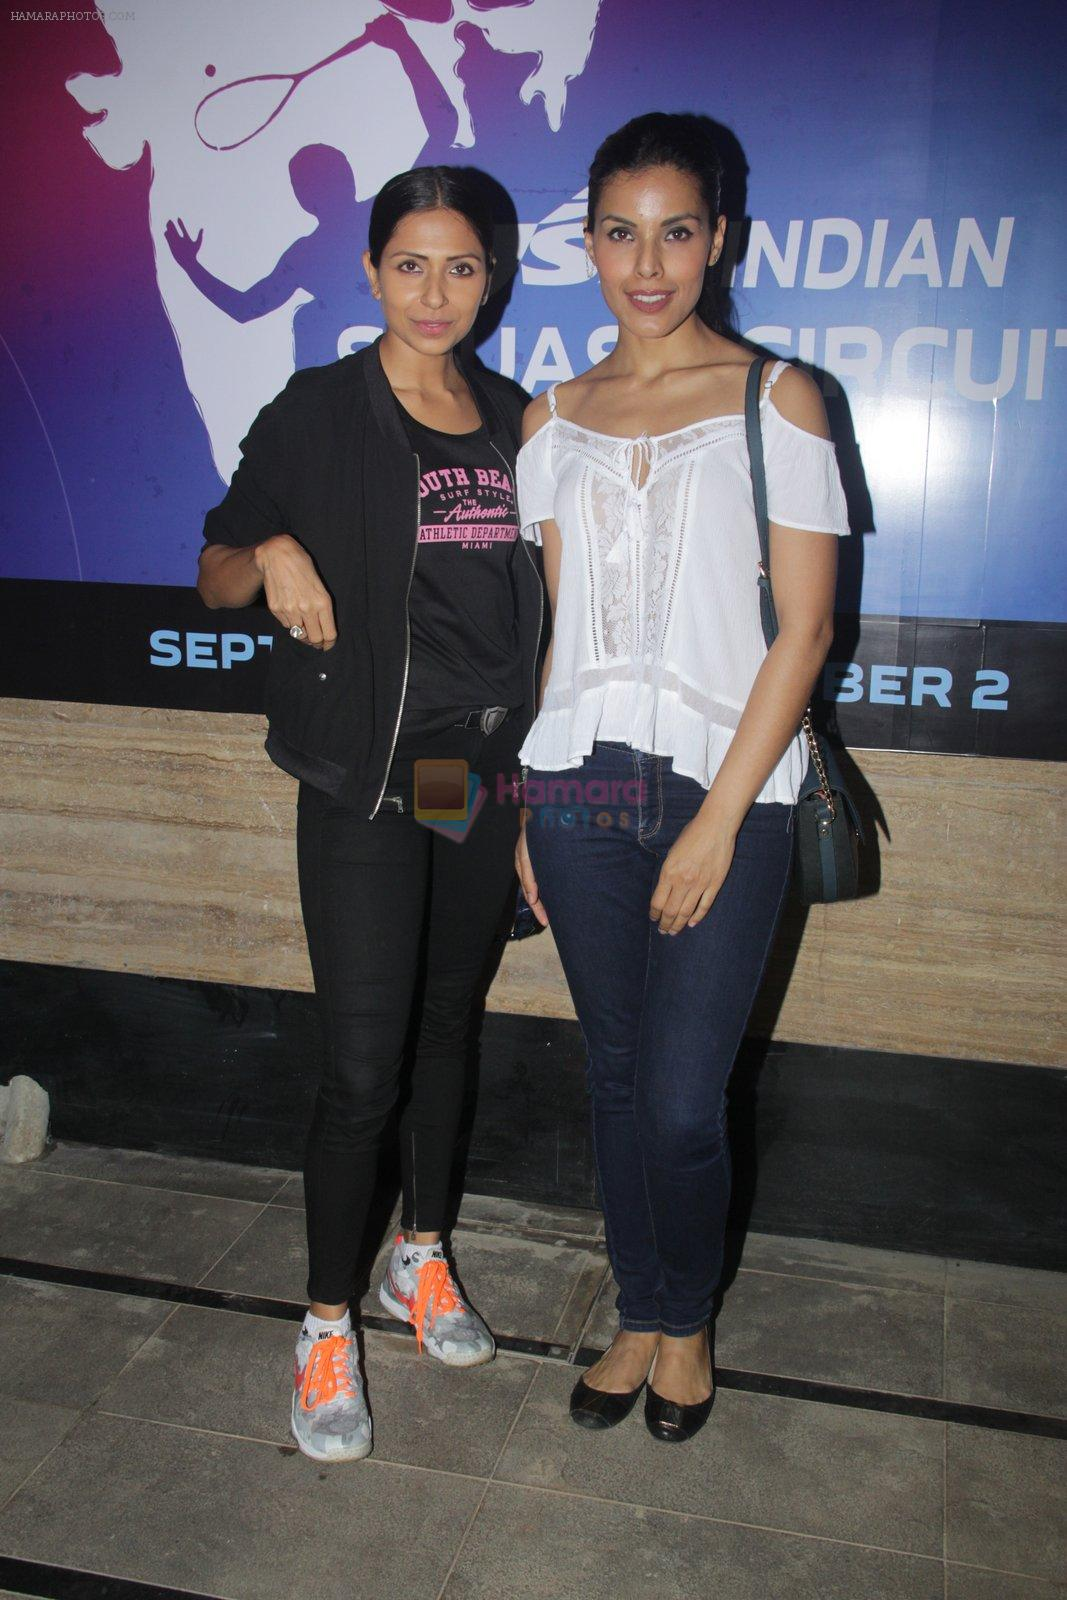 Candice Pinto, Deepti Gujral at JSW Badminton meet on 29th Sept 2016